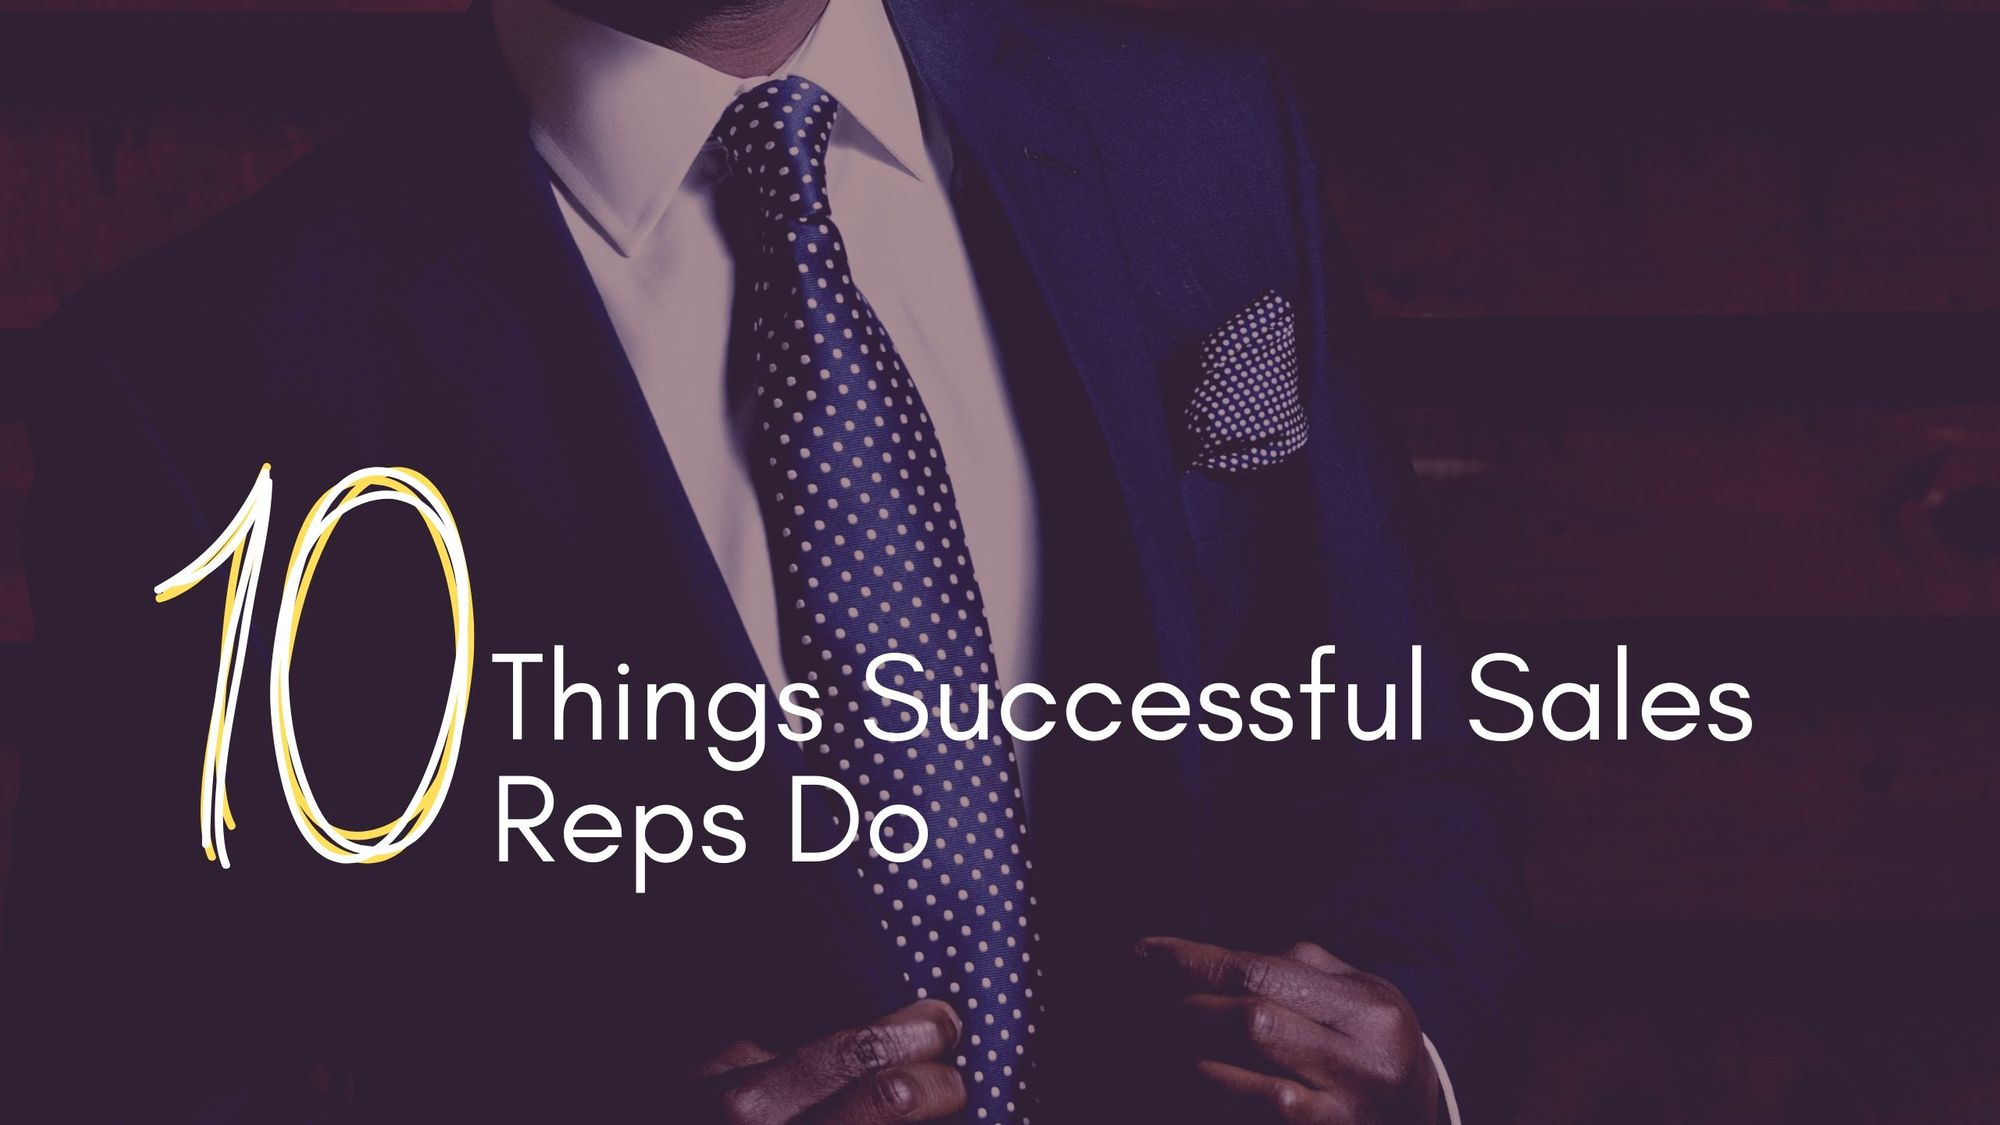 10 Things Successful Sales Reps Do